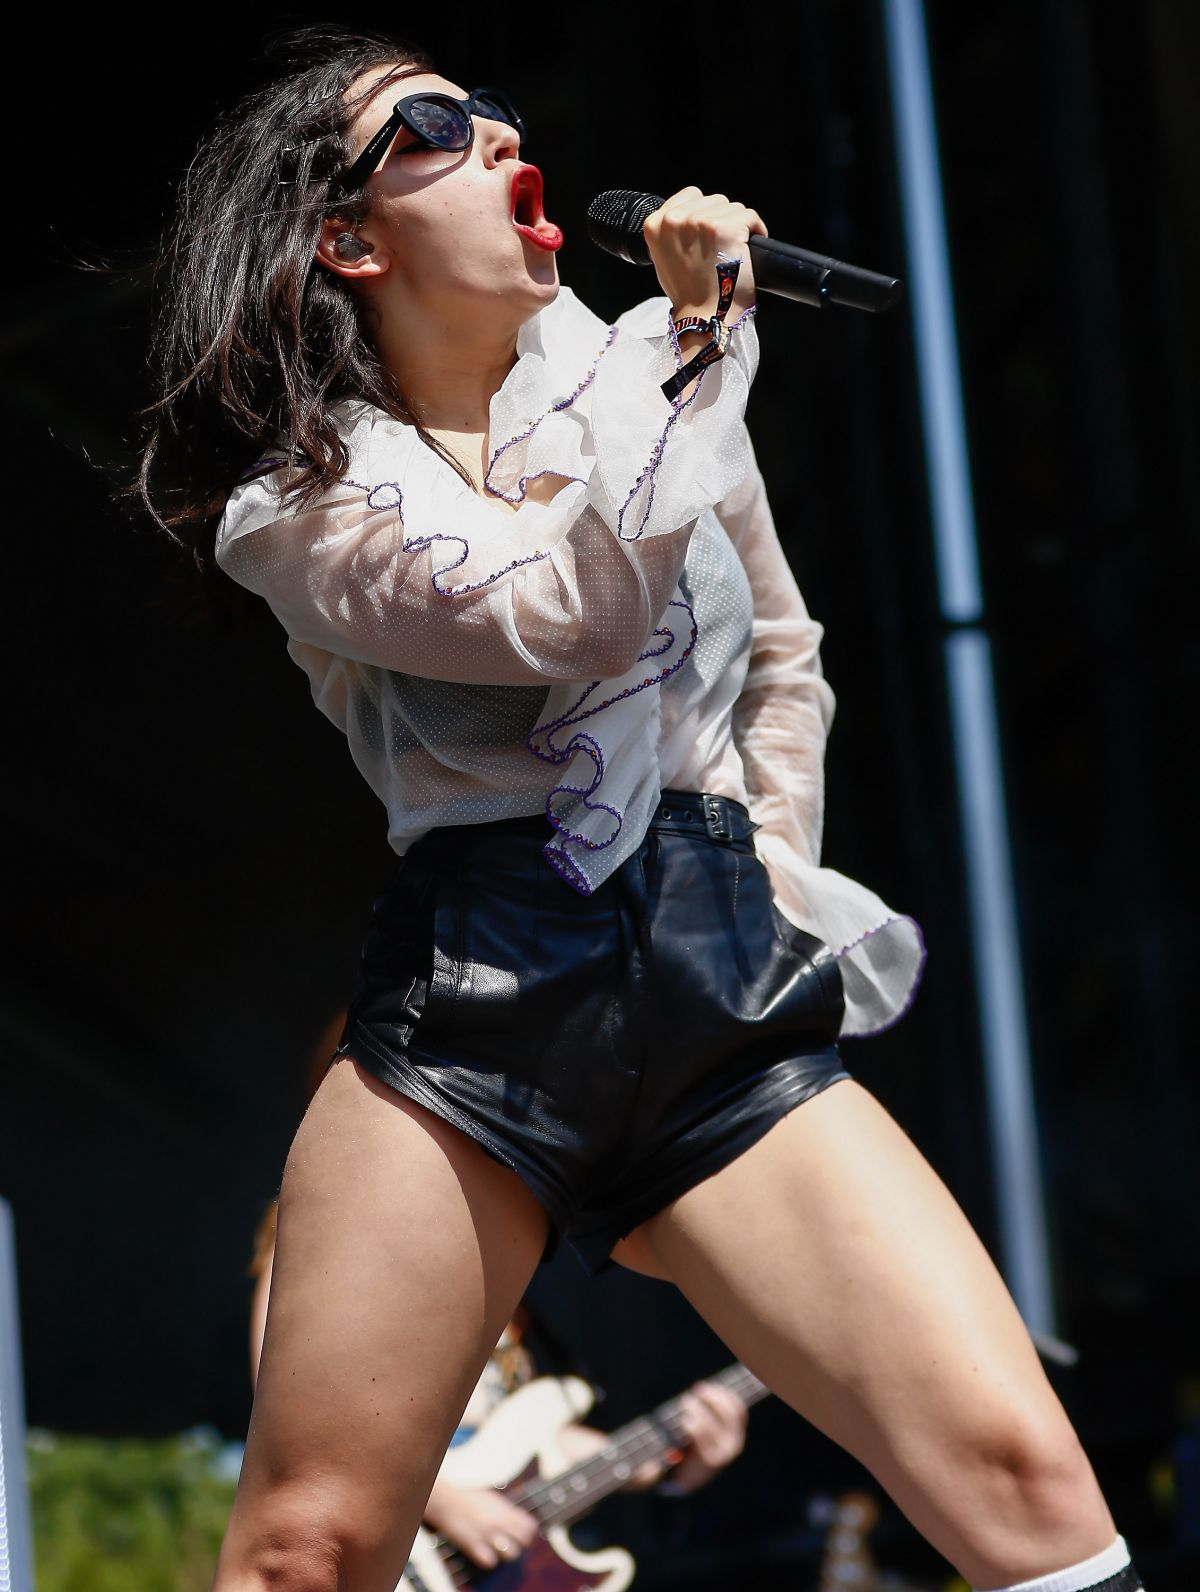 CHARLI XCX Performs at Lollapalooza in Chicago 08/01/2015